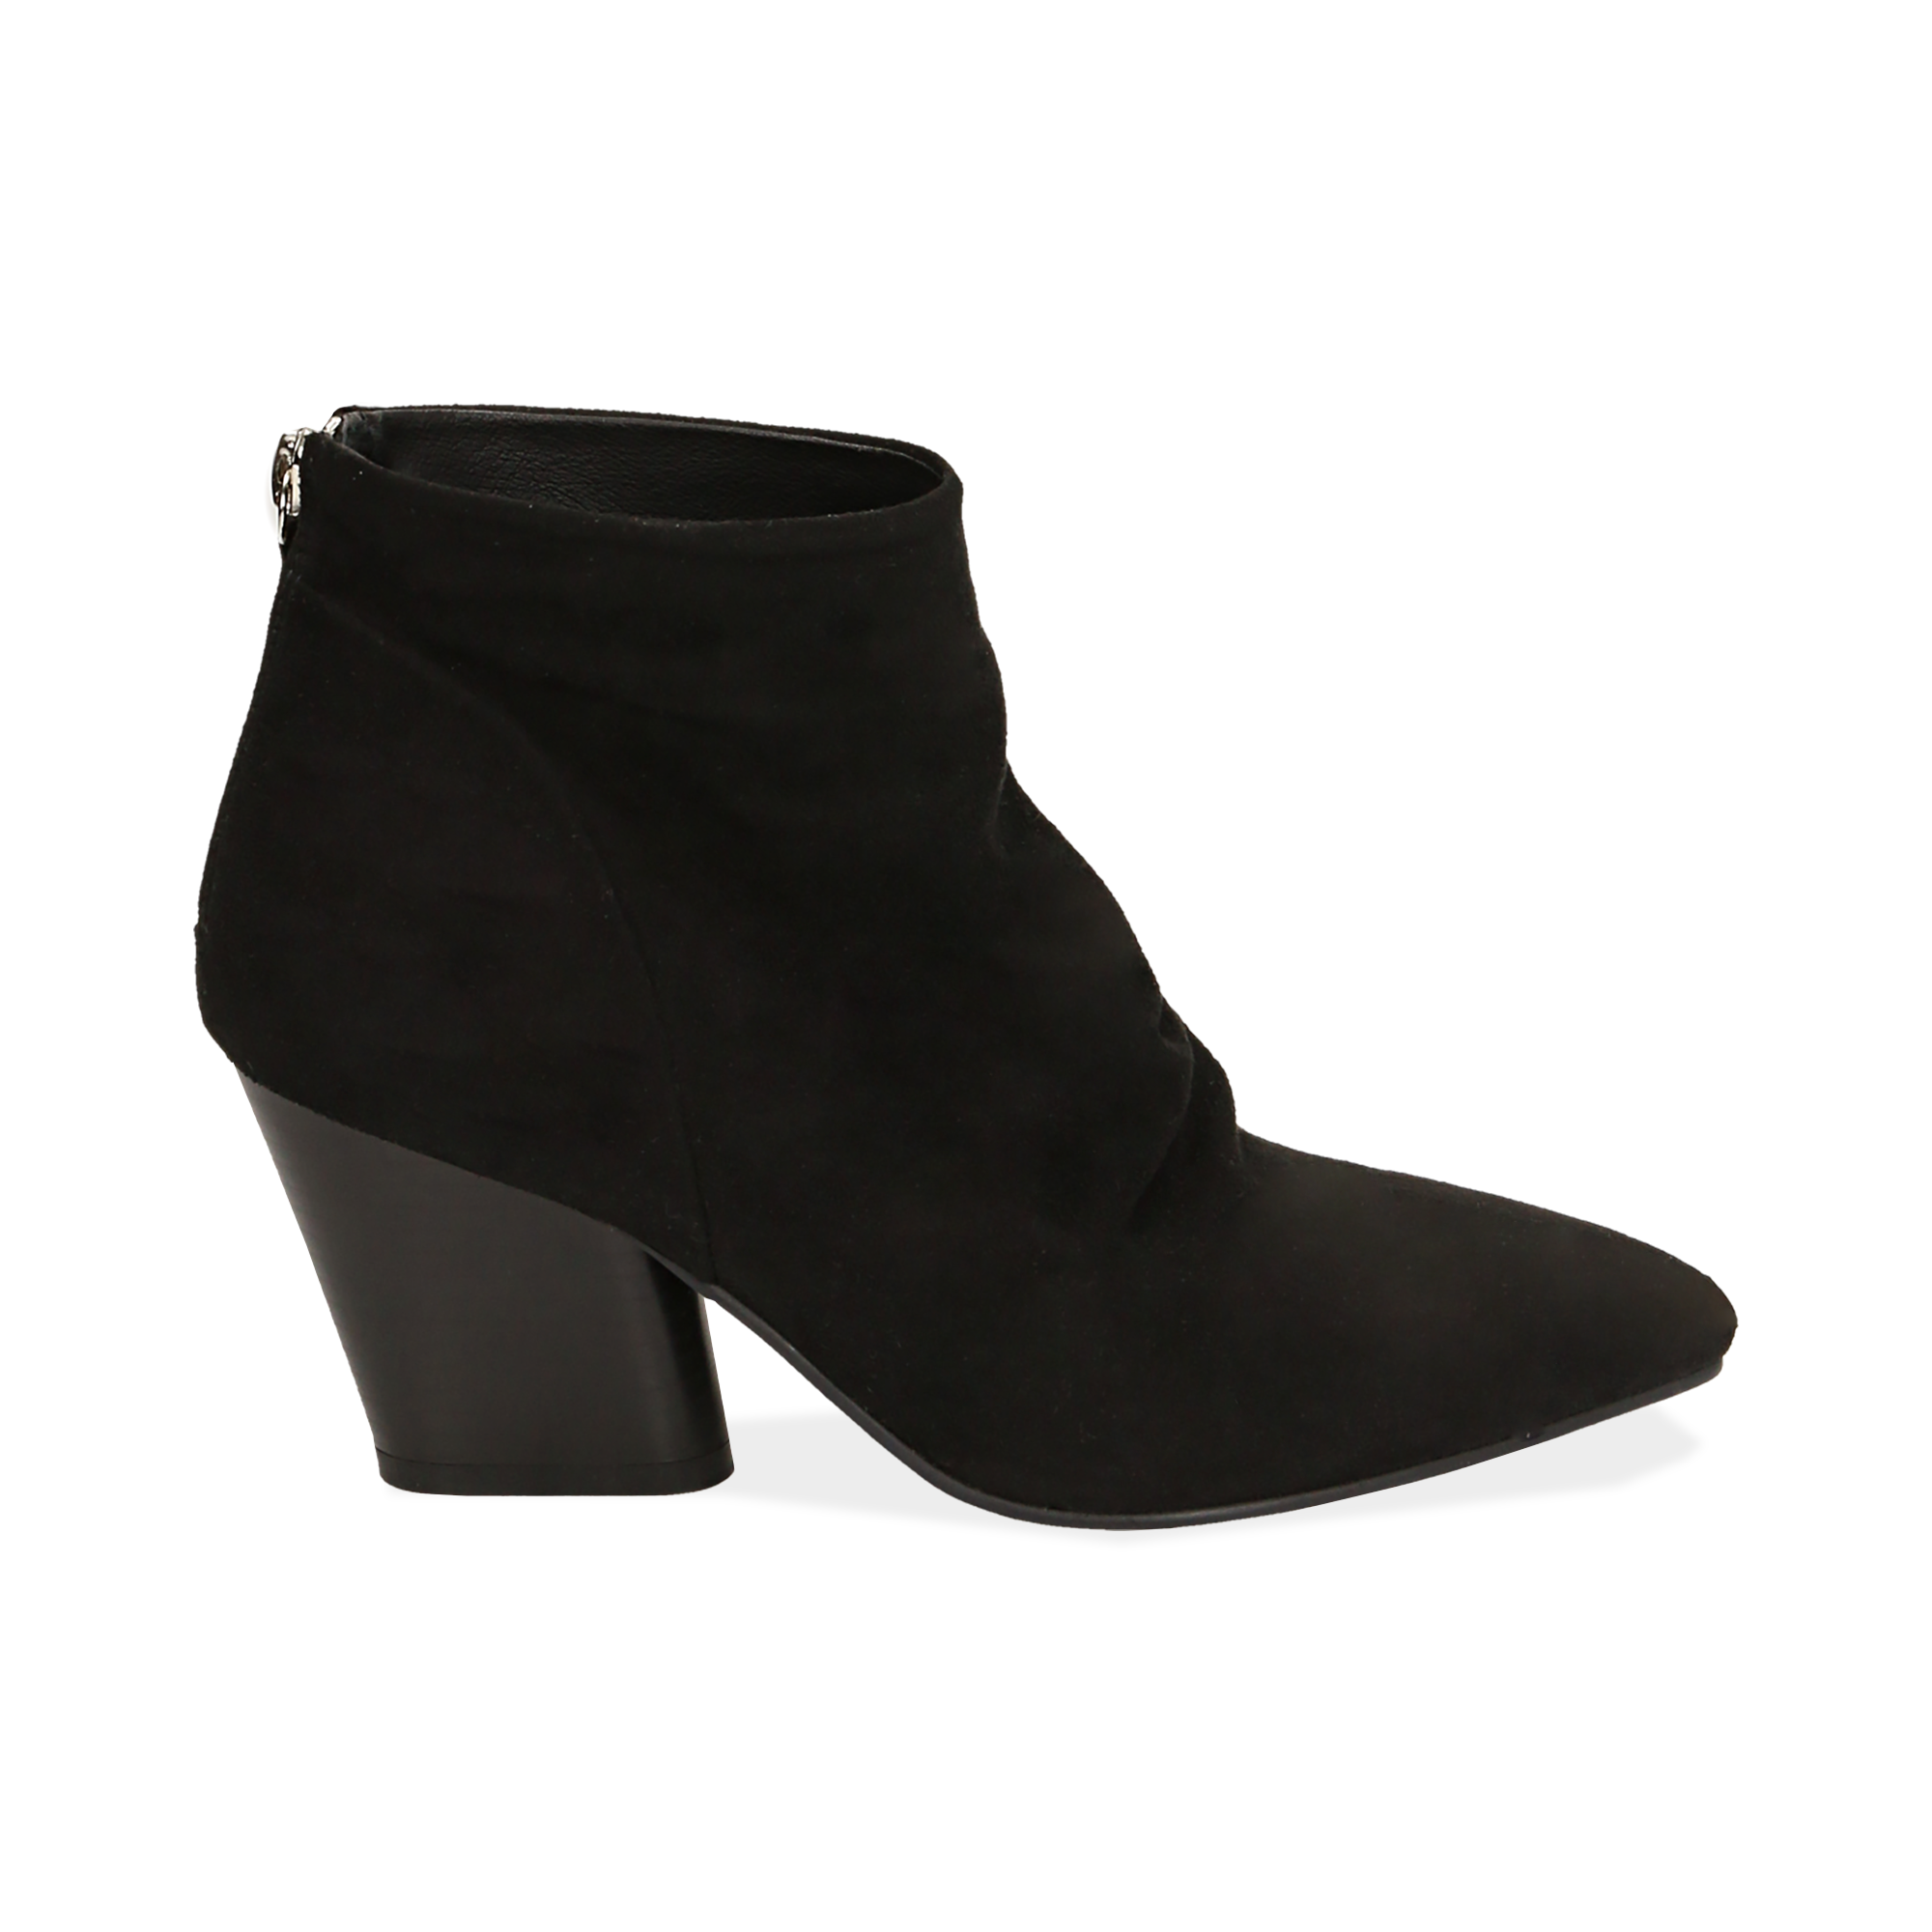 Ankle boots neri in microfibra, tacco 7,50 cm